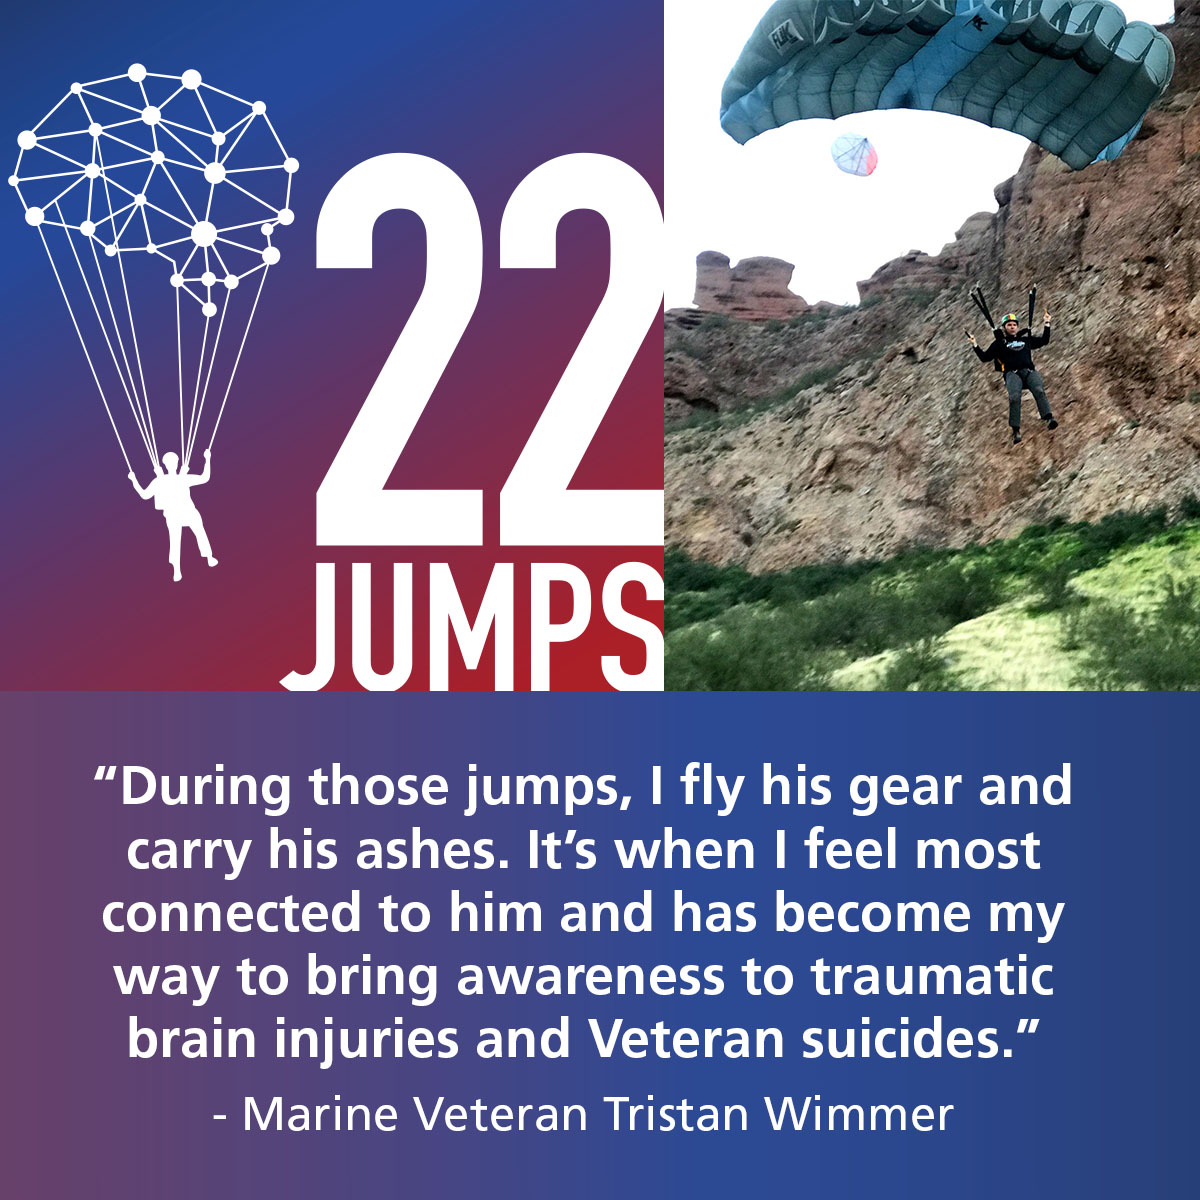 Quote from Tristan Wimmer - 22 Jumps